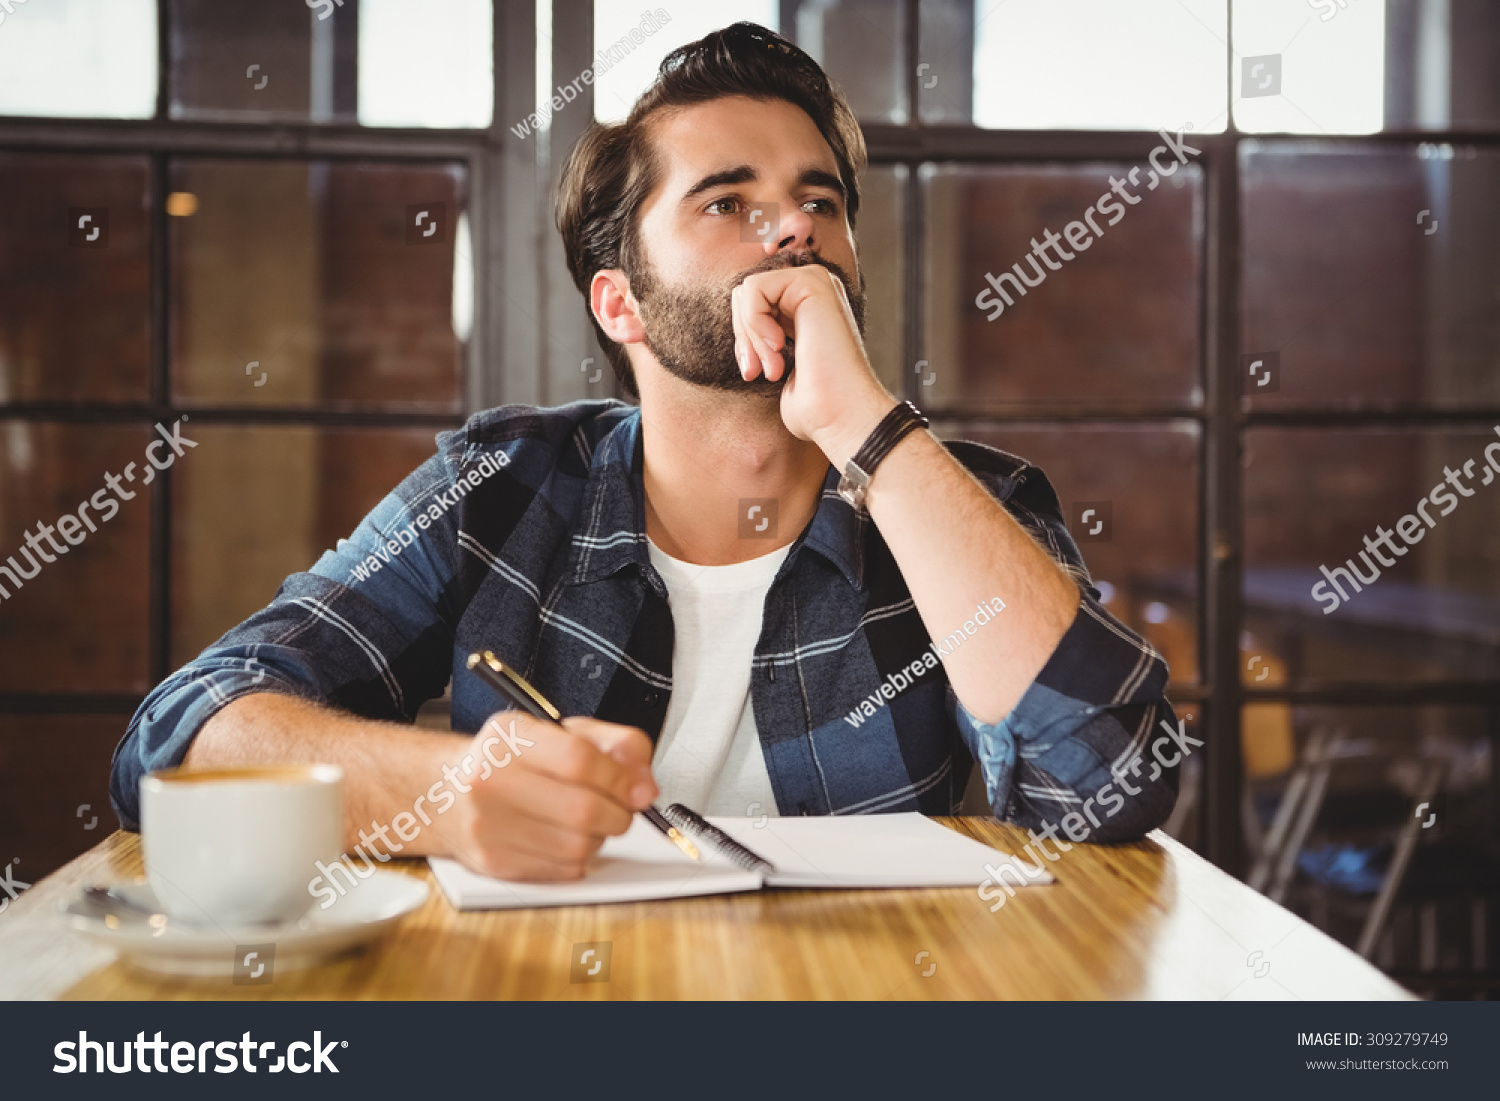 Young man taking notes in his notebook at a cafe #309279749